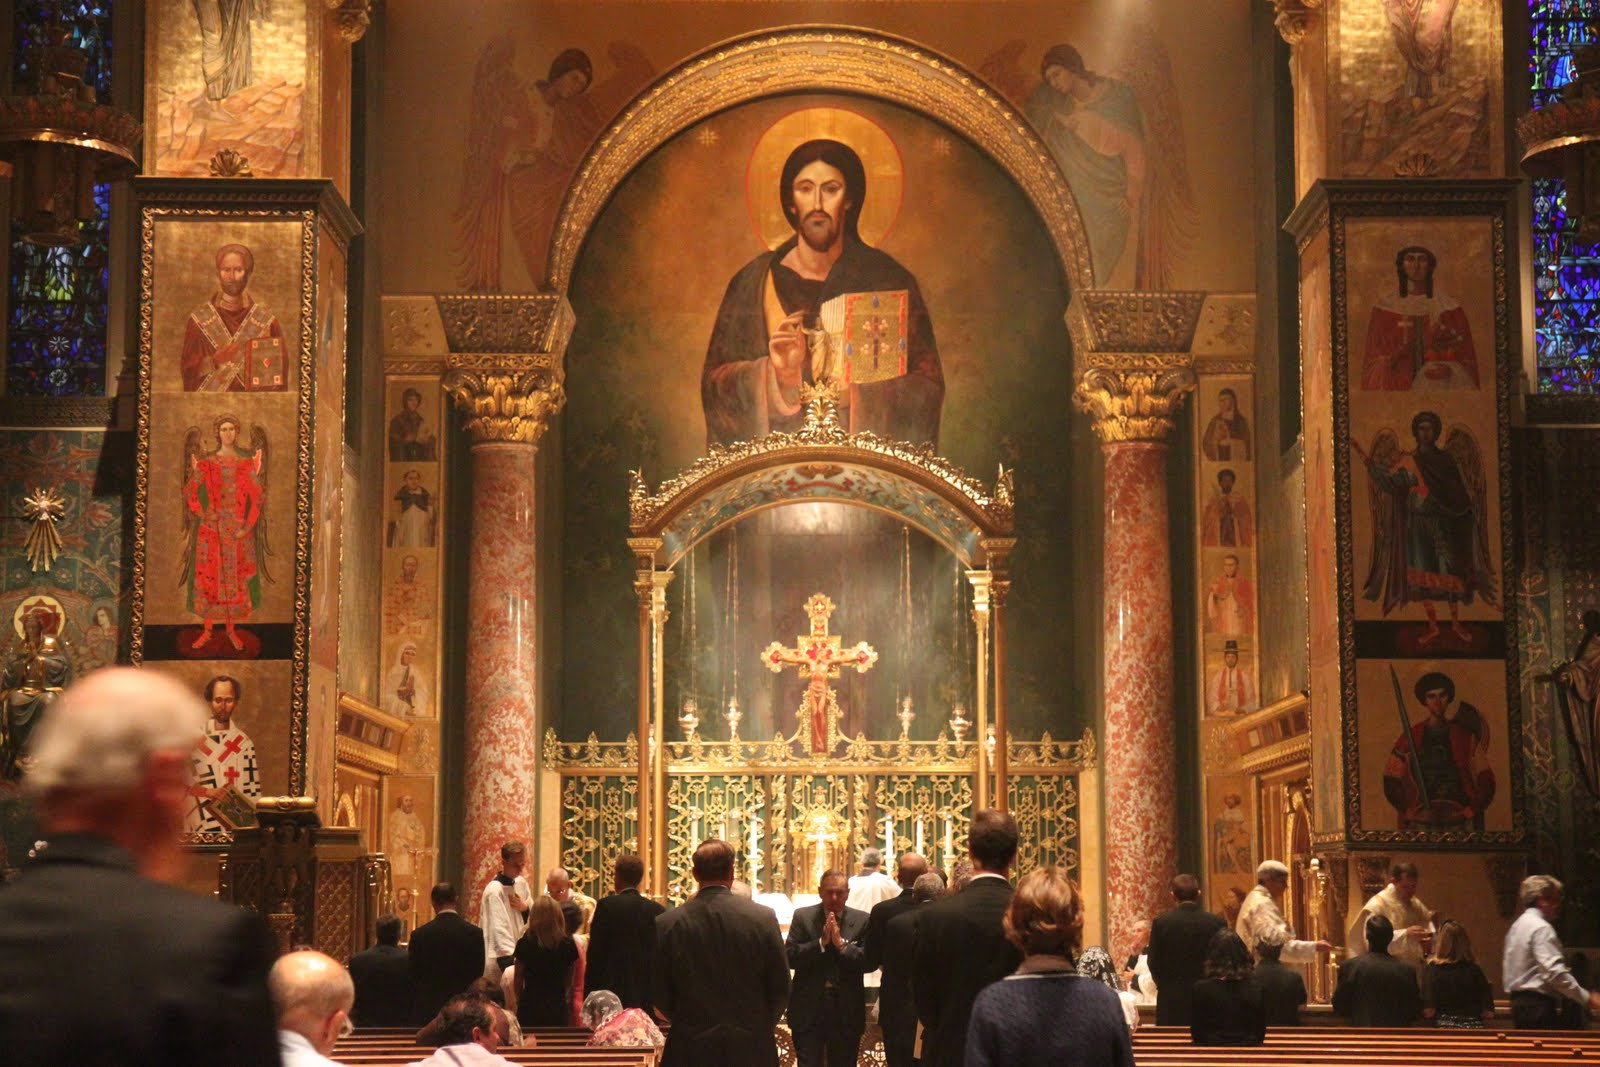 a reflection on my experience with growing up in an orthodox church Here is some information that may help you feel more at home in orthodox worship--twelve things i wish i'd known before my first visit to an orthodox church 1 what's all this commotion.